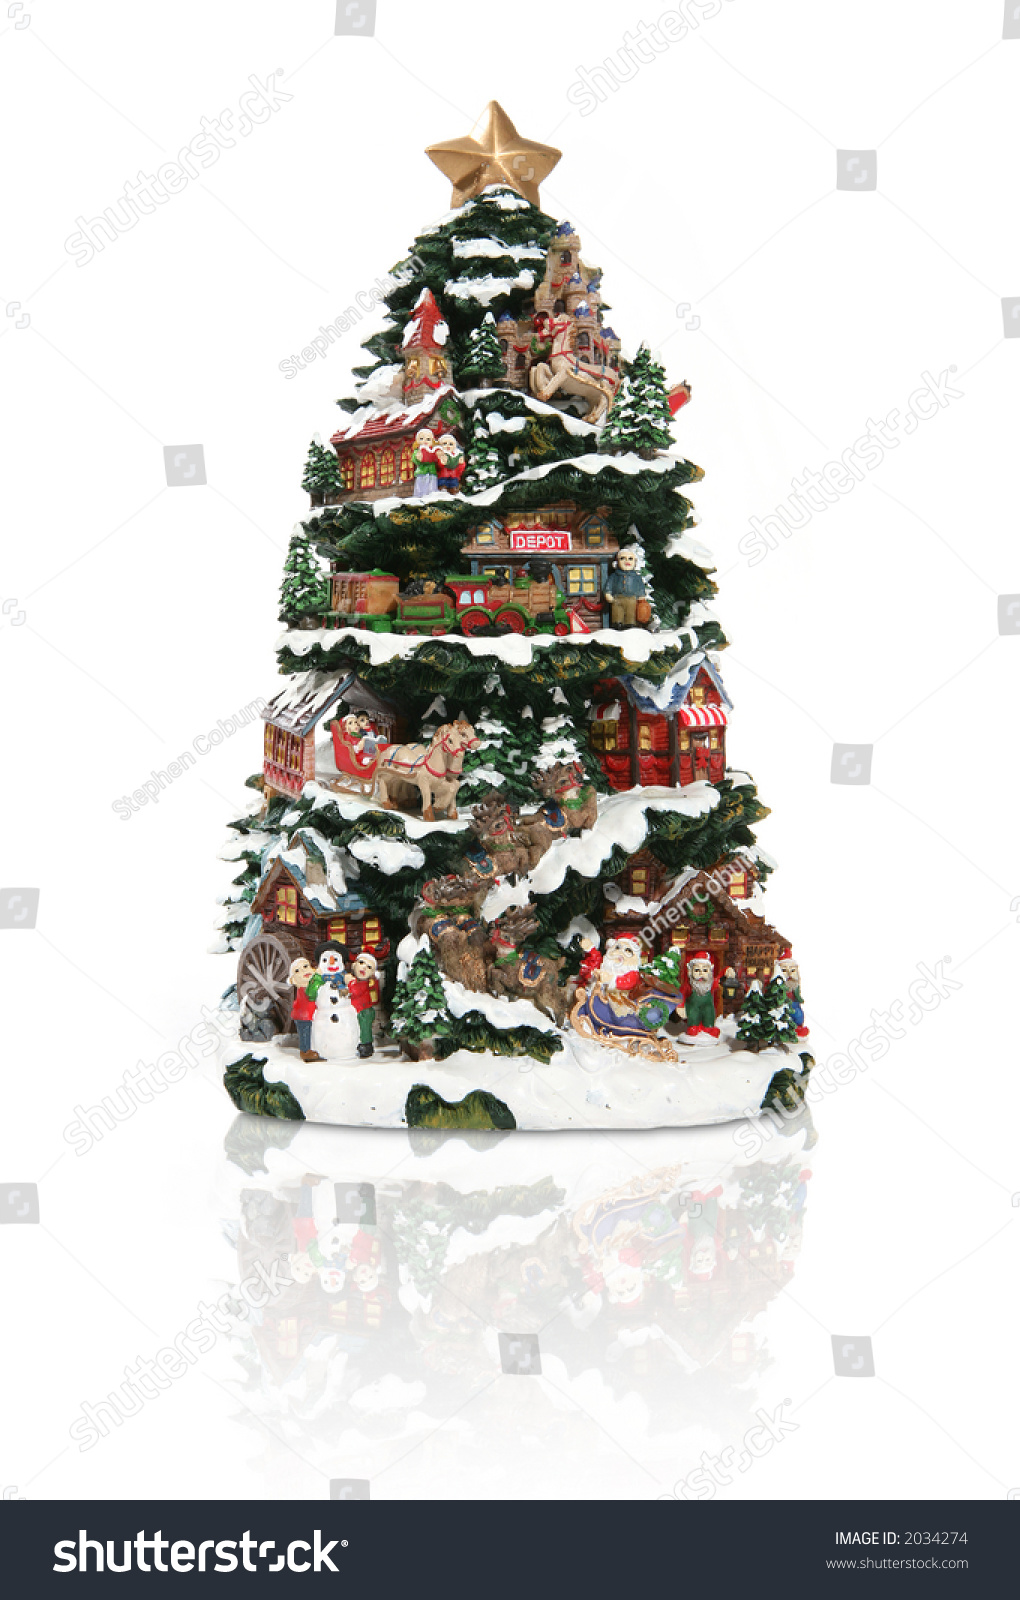 A Large Christmas Tree With Many Decorations Stock Photo ...